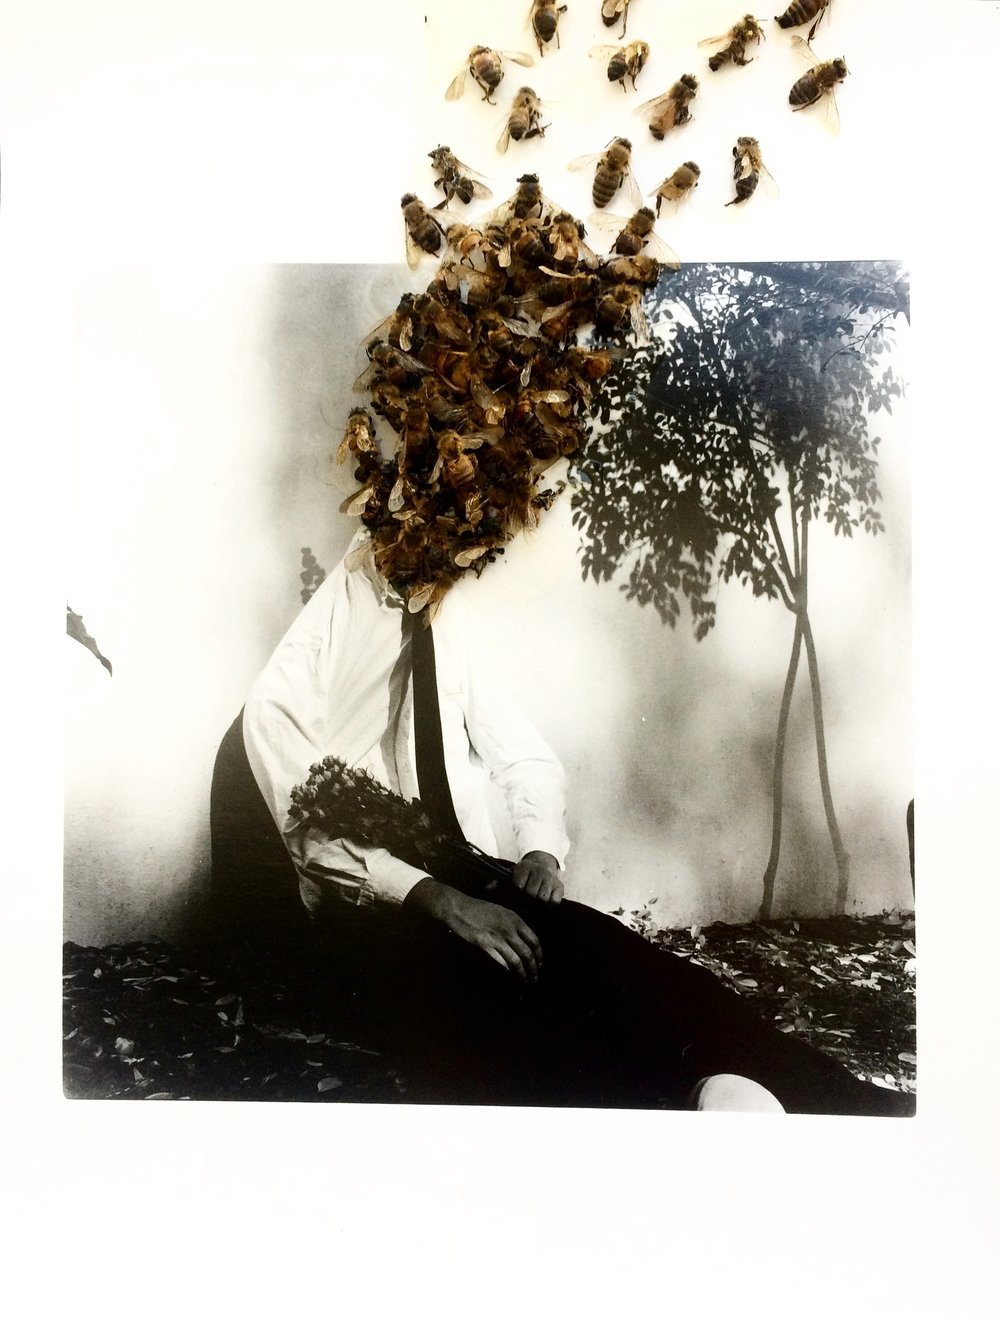 Collaboration with photographer Bow Smith  Mixed Media, dead honeybees on a silver gelatin photograph